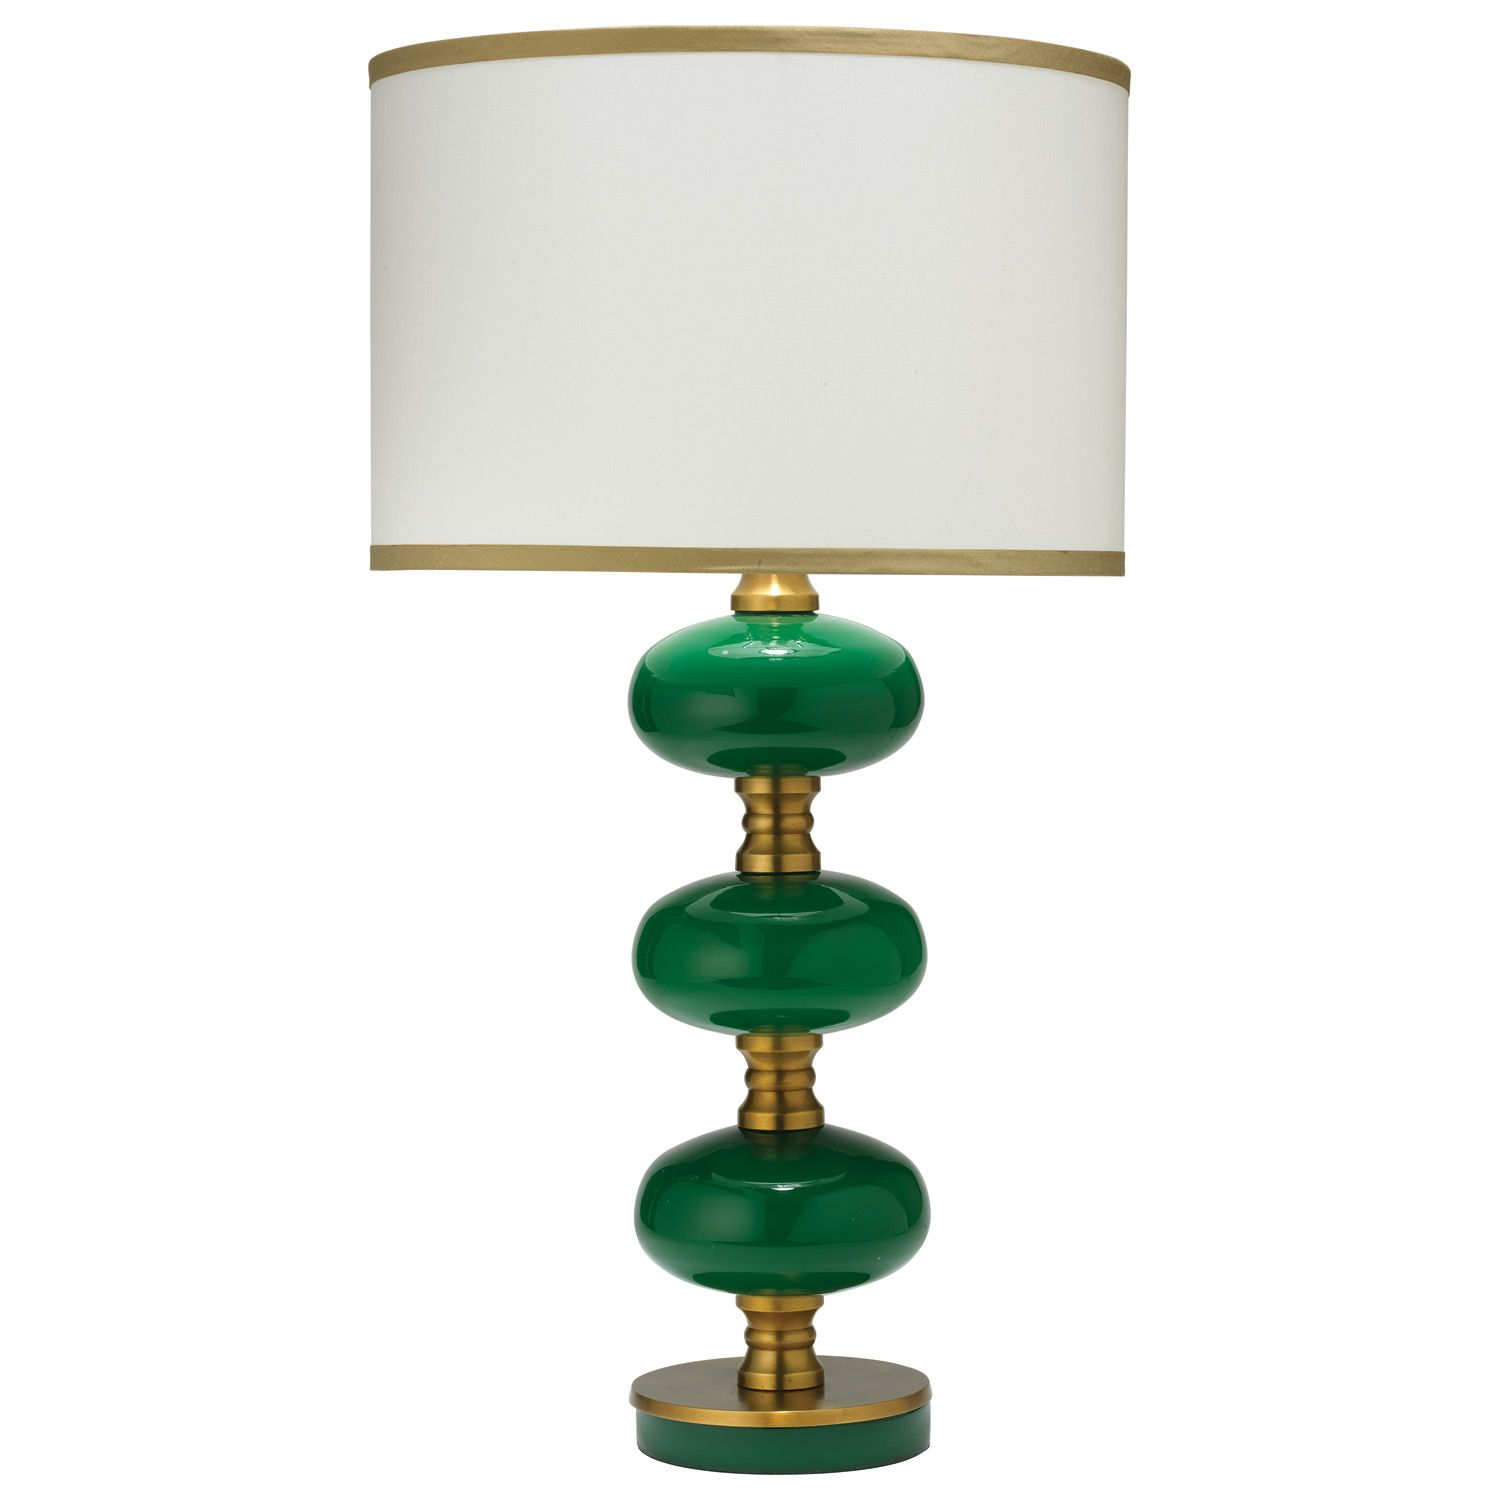 Charming Jamie Young Lighting Table Lamp Base Stockholm Emerald. #laylagrayce